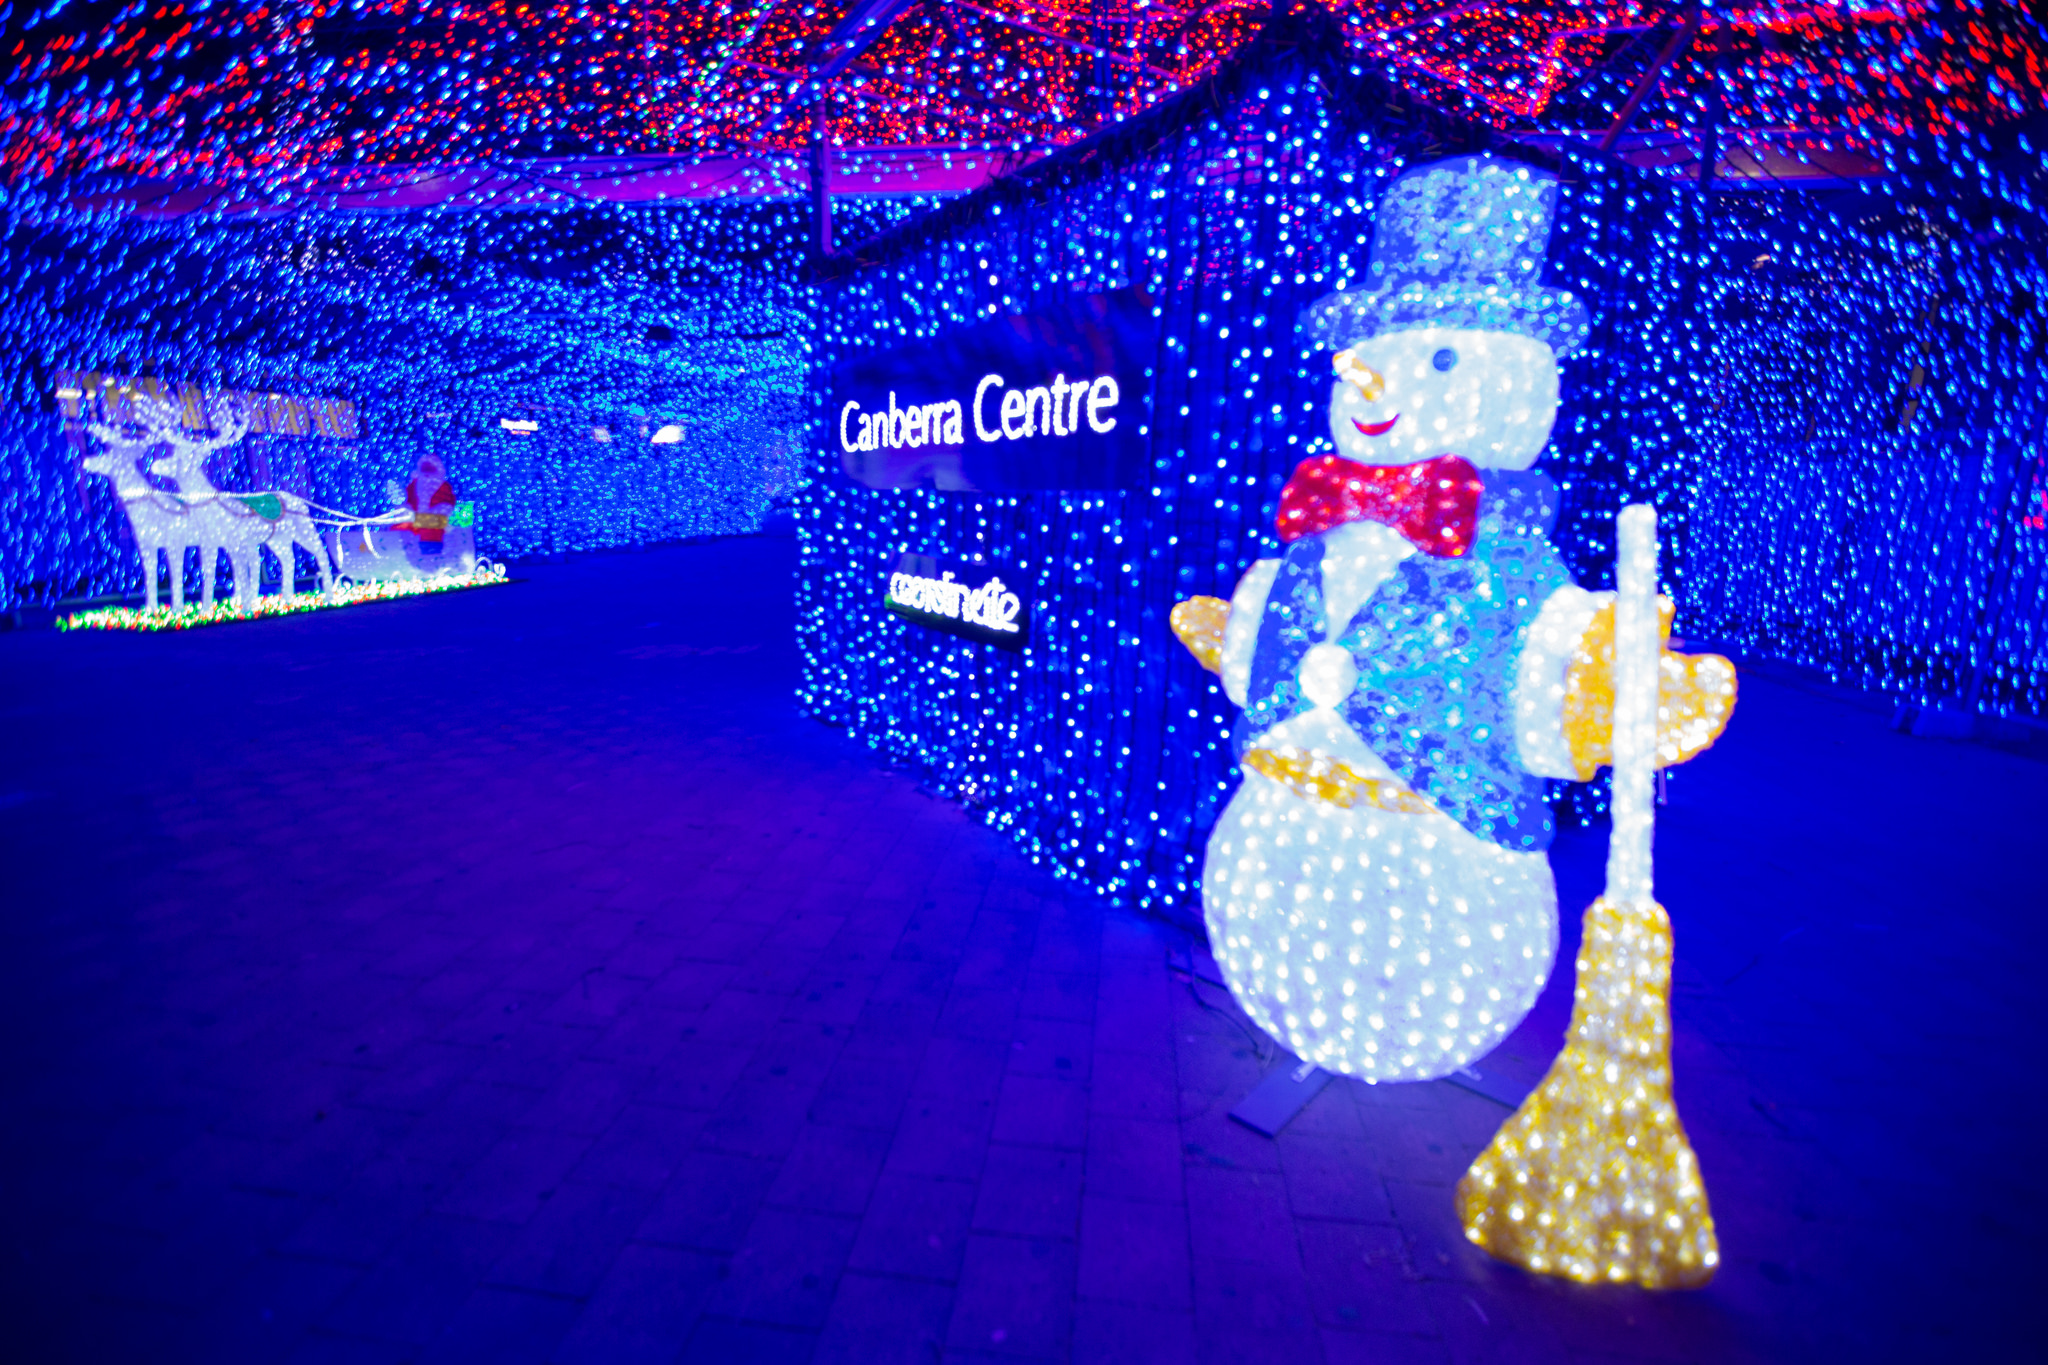 australian man raises money for charity with record breaking 12 million led christmas light display in canberra - What Month Is Christmas In Australia